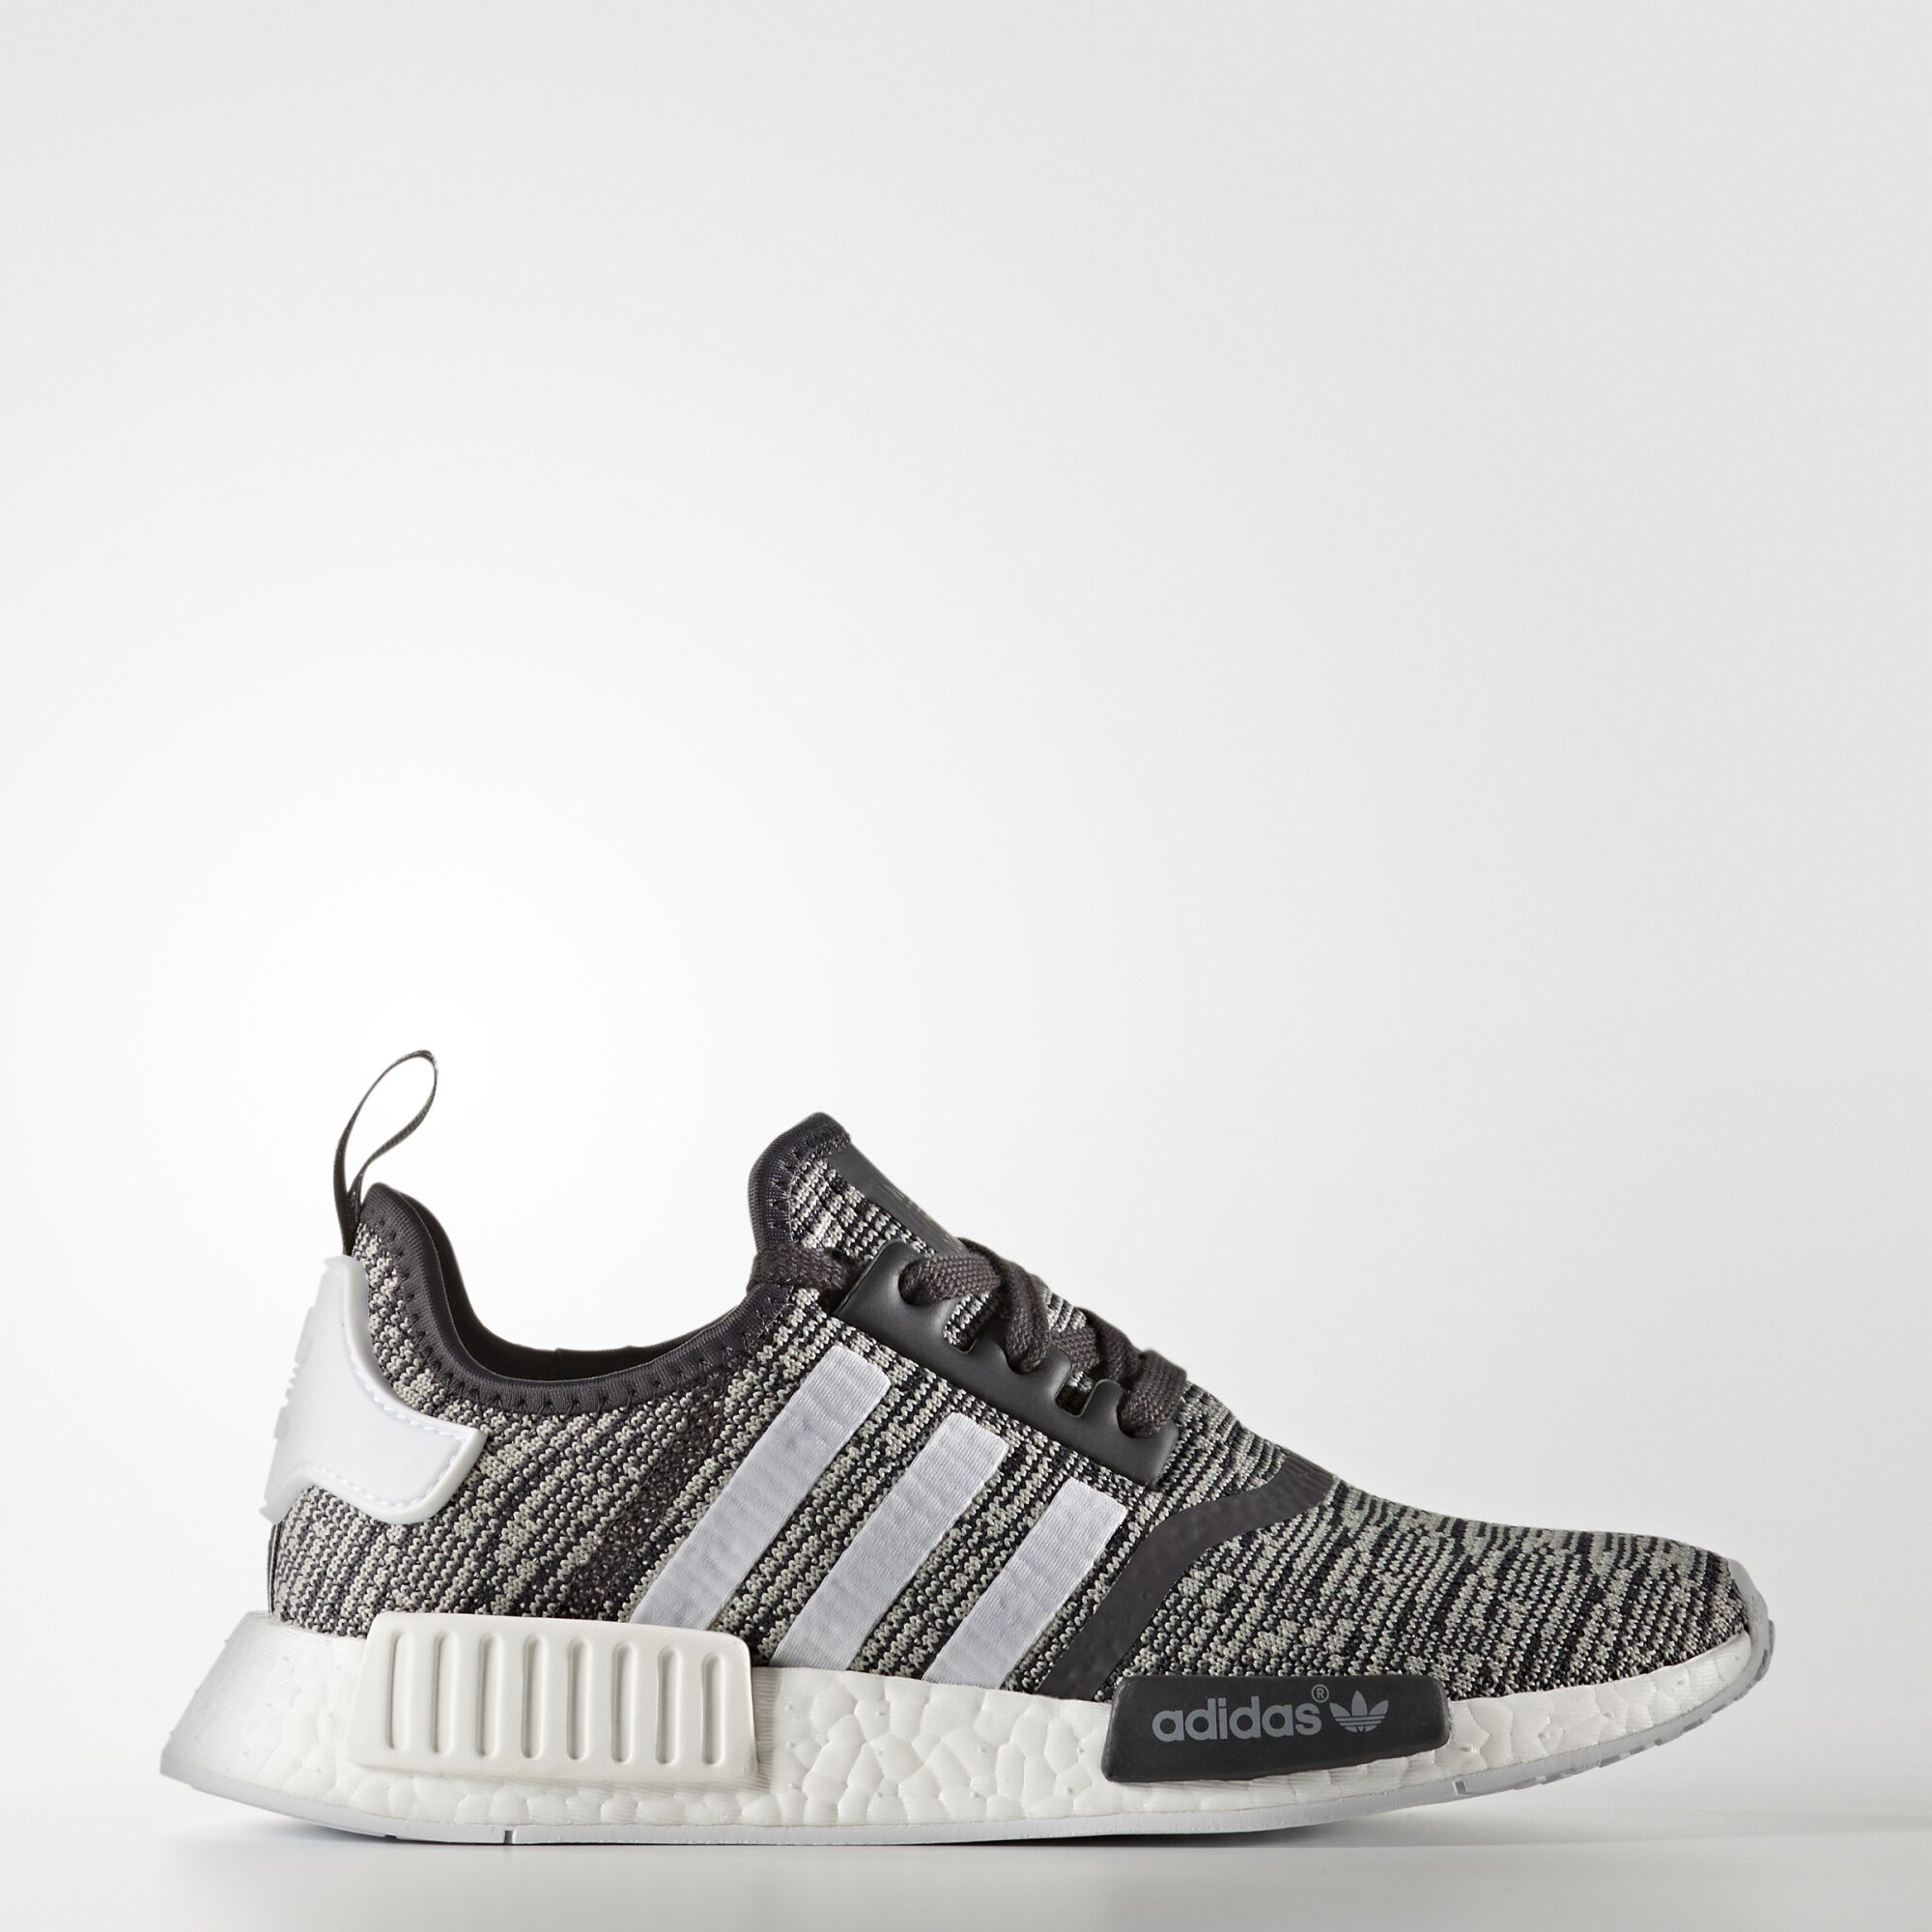 Adidas Shoes For Women Black And White 2017